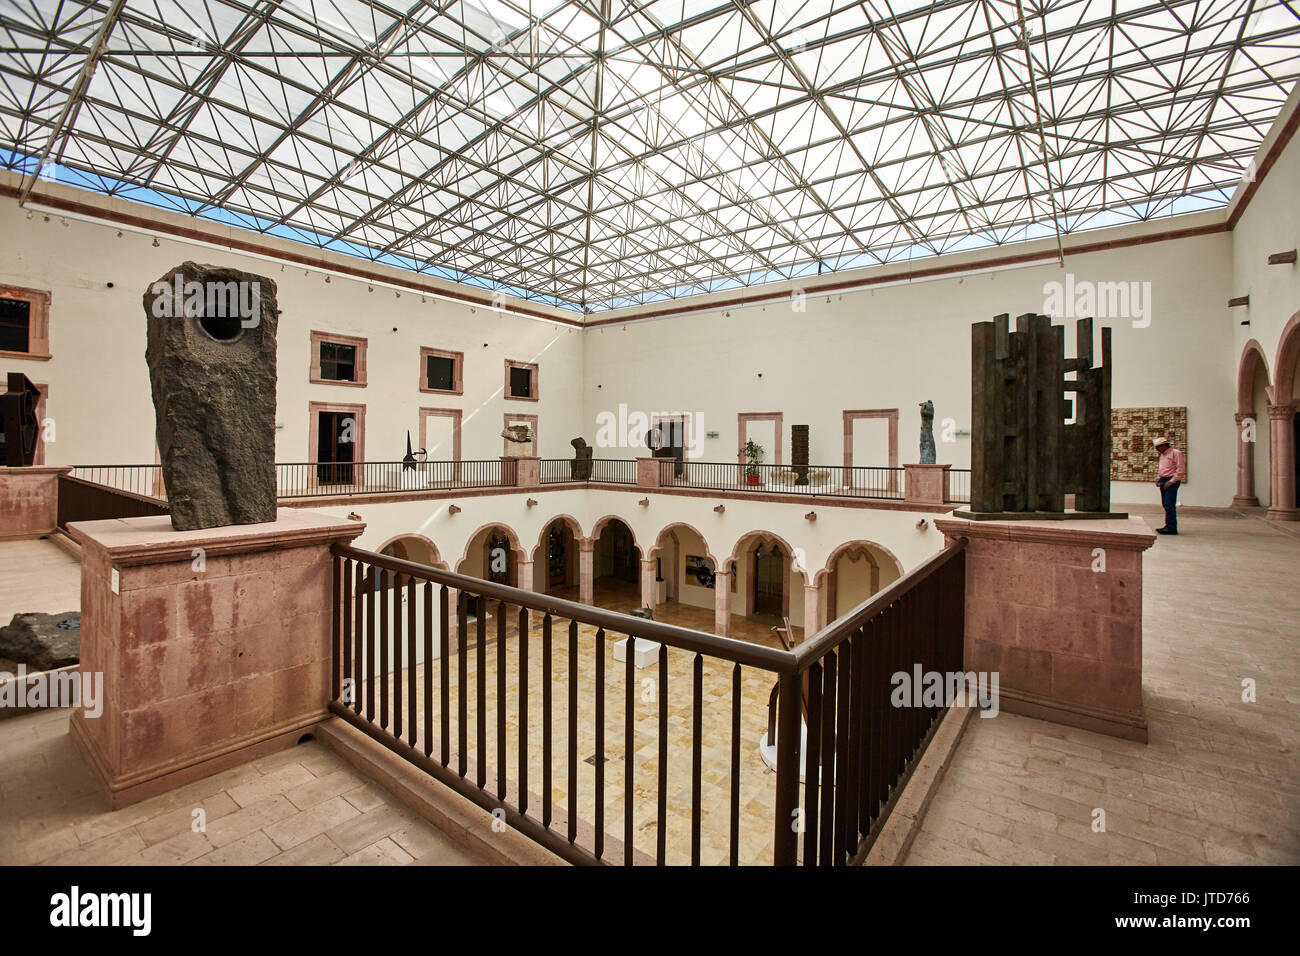 America; Mexico; Zacatecas city; Art Abstract Manuel Felgueréz Museum   The Museo Manuel Felguerez is located - Stock Image